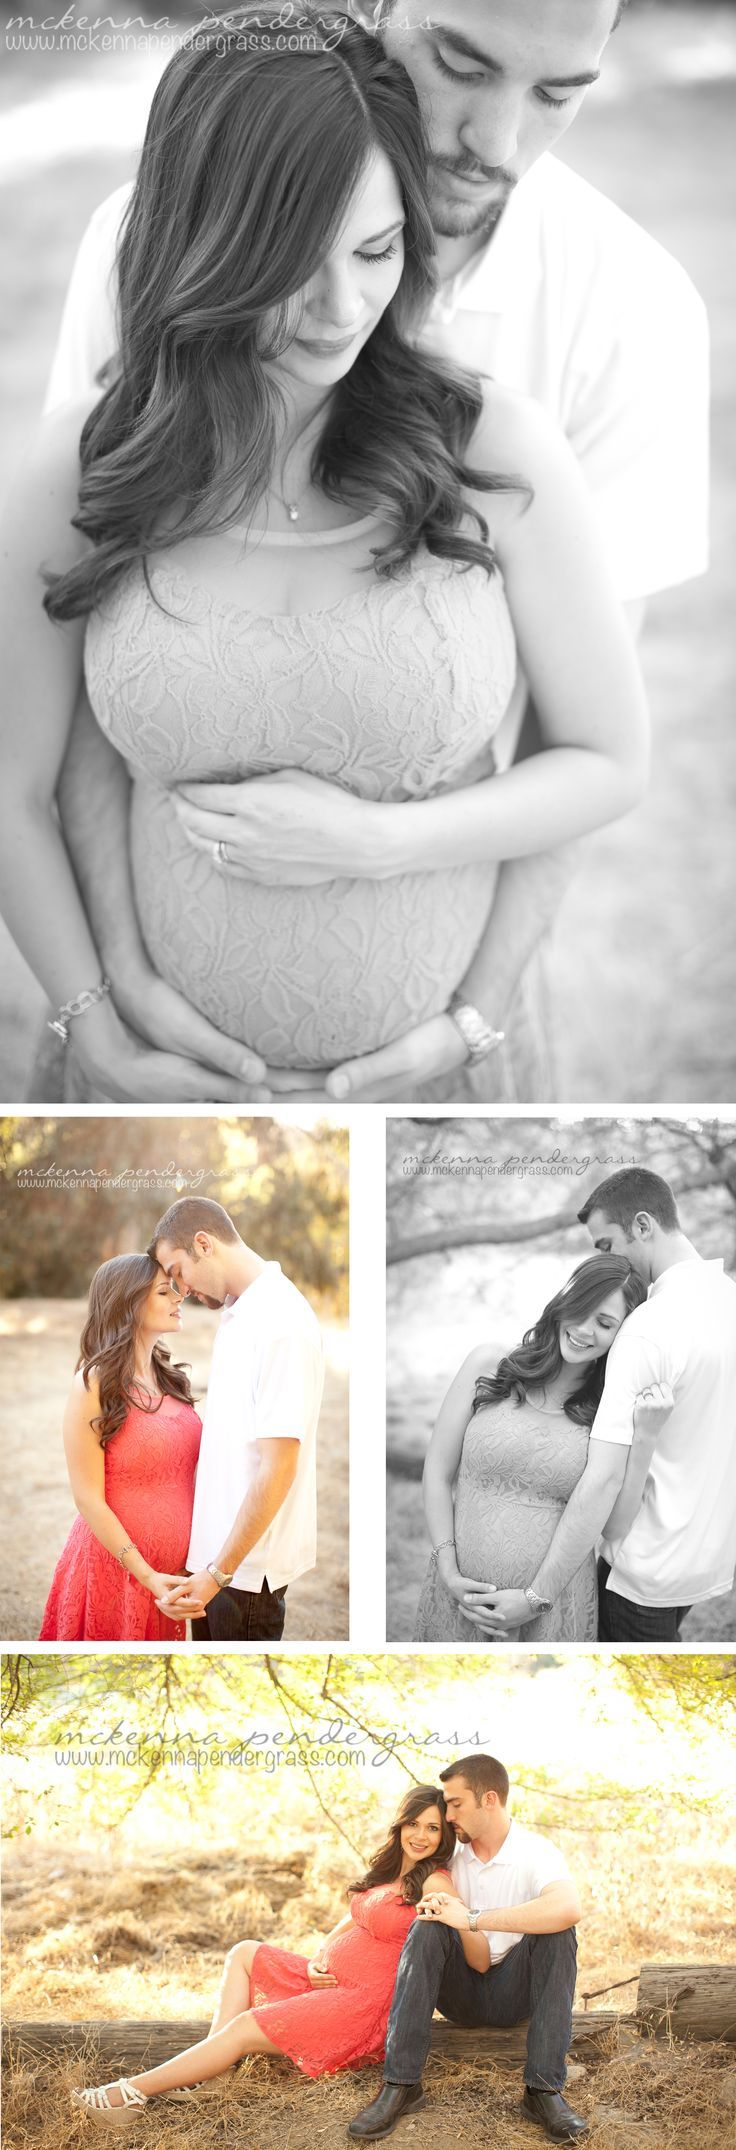 Romantic couples maternity posing ideas – Pasadena Maternity Photographer » McKenna Pendergrass Photography